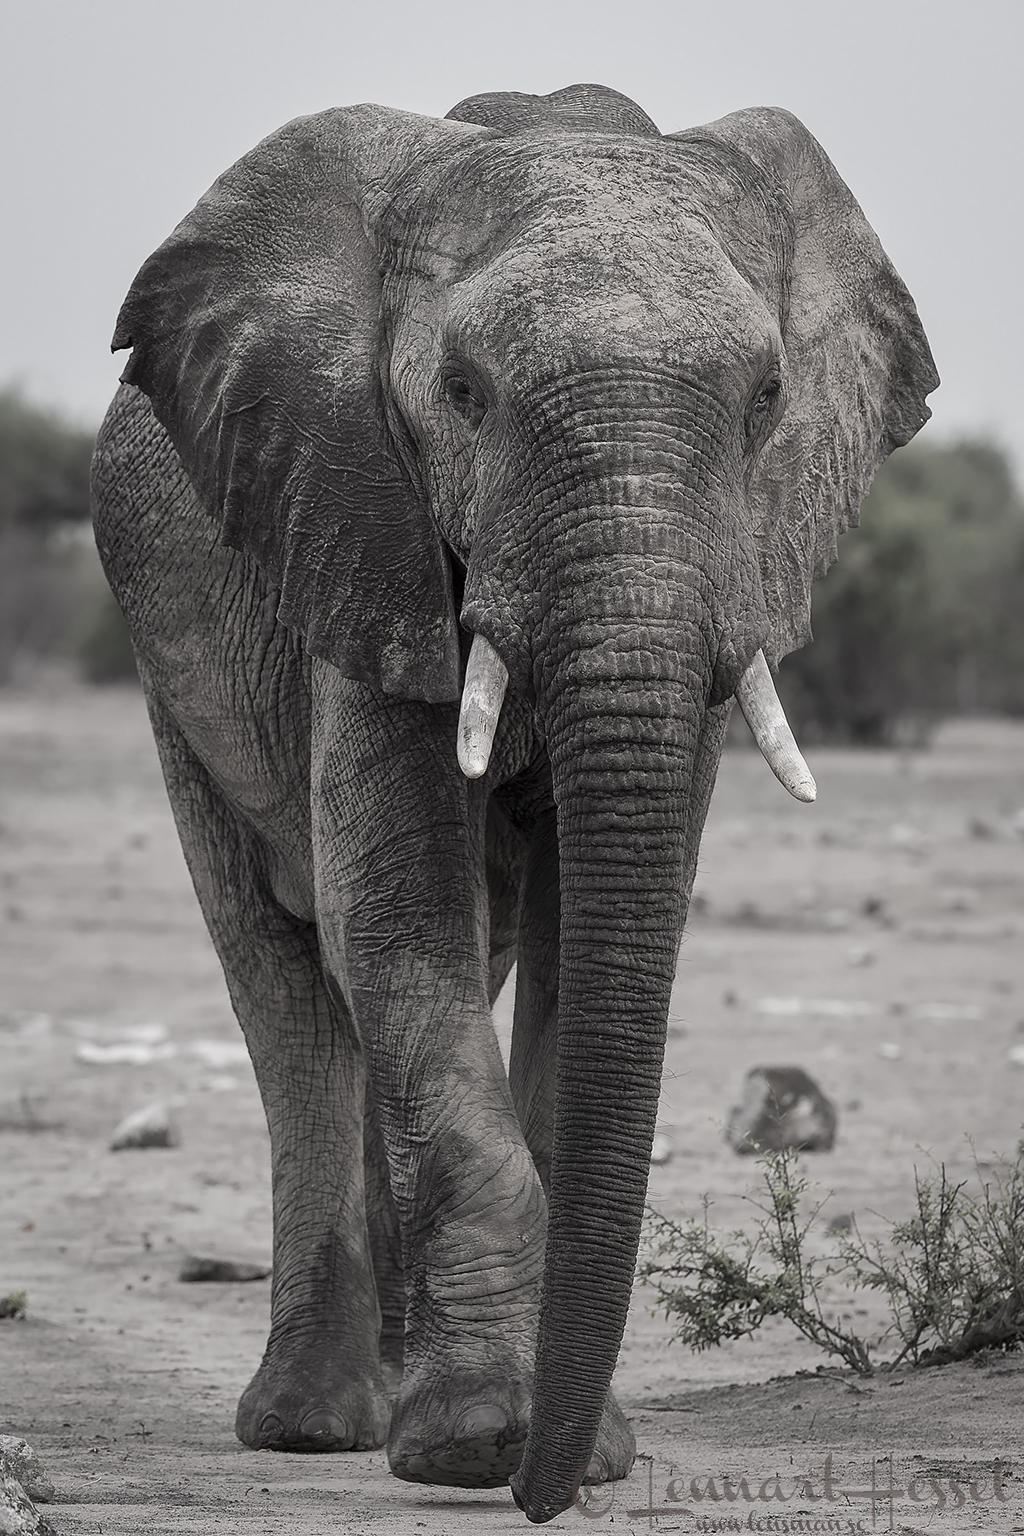 Elephant bull in Chobe River area, Botswana